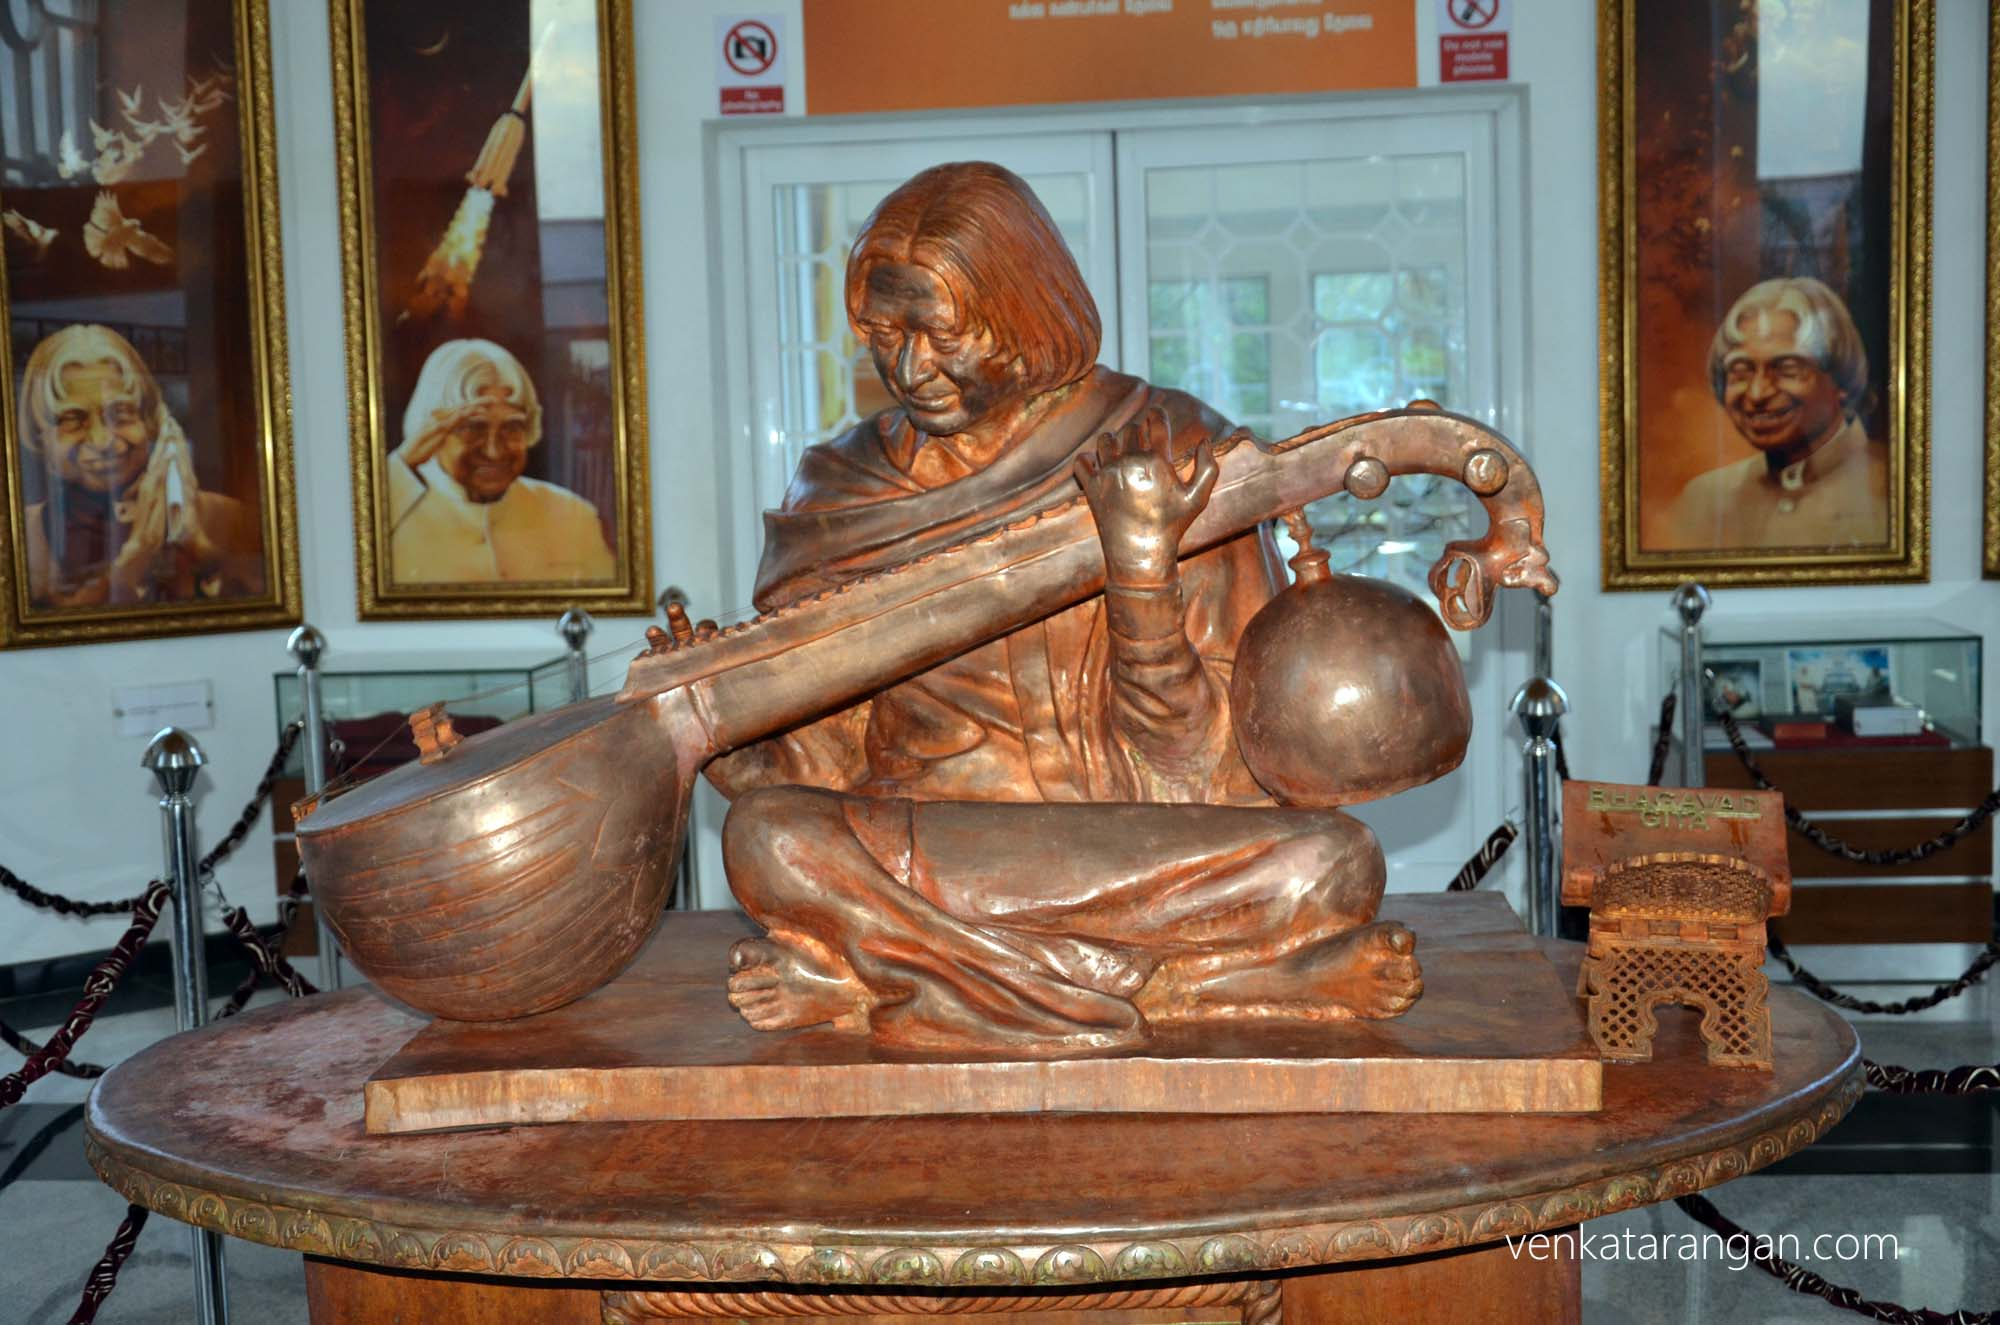 Dr Kalam loved to play the Veena, a classical string instrument